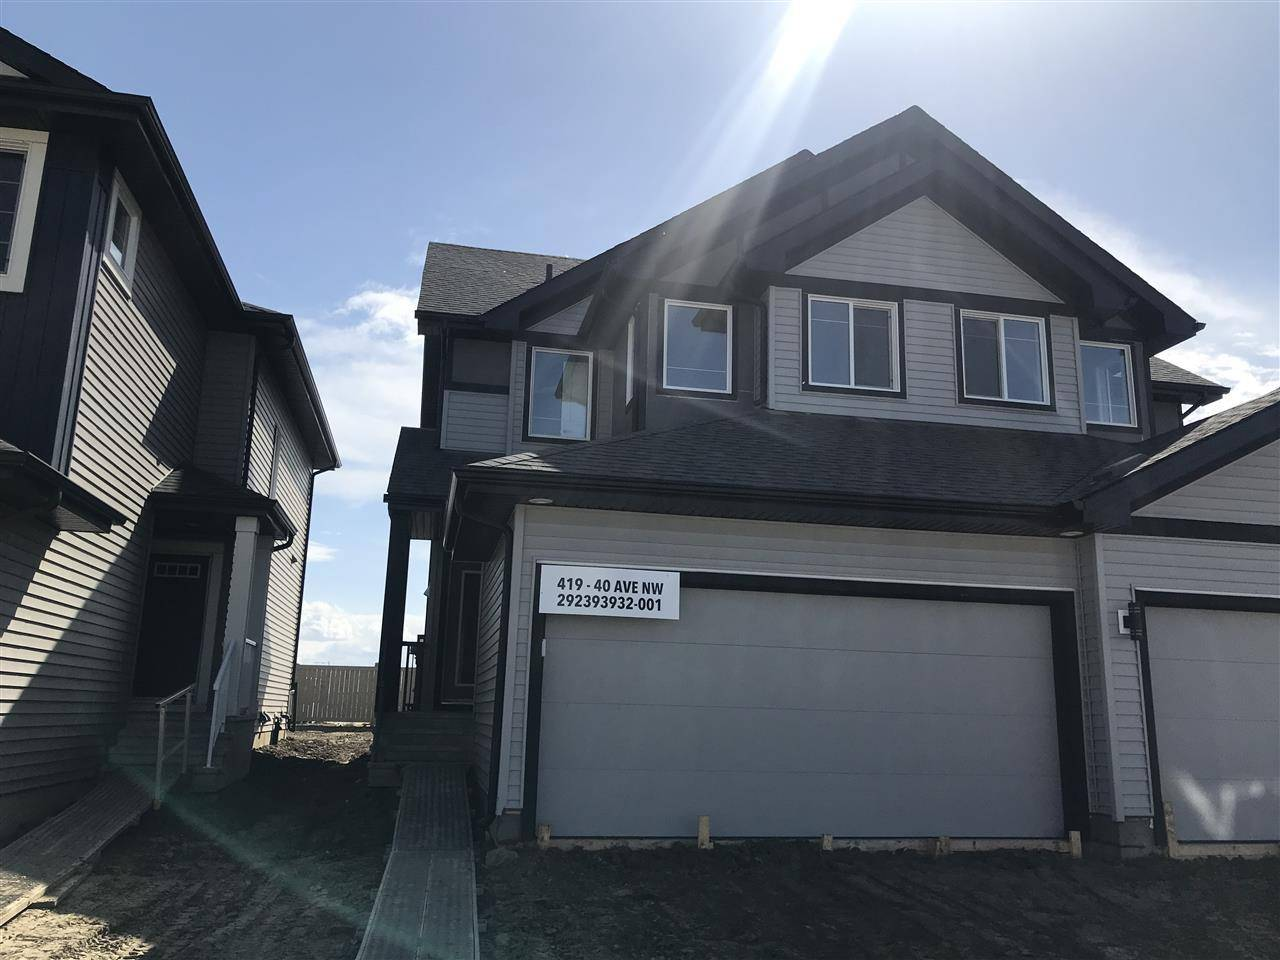 Townhouse for sale at 419 40 Ave Nw Edmonton Alberta - MLS: E4172024